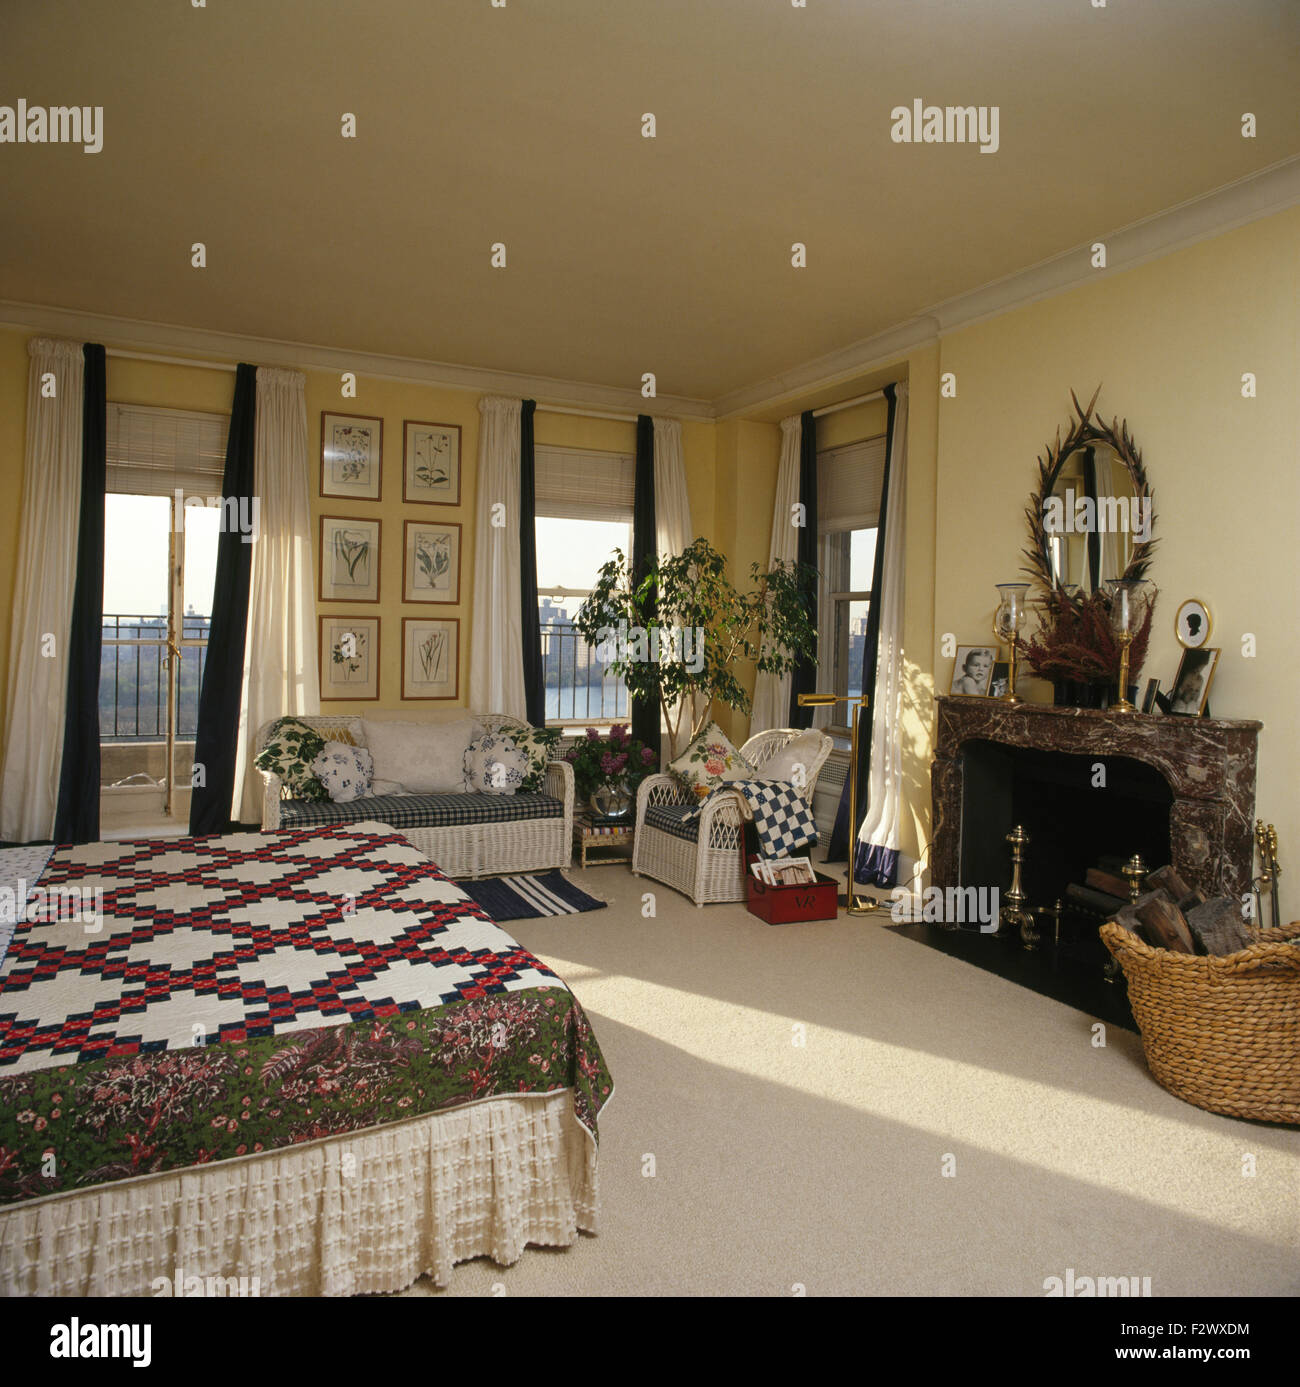 Black Marble Fireplace In City Bedroom With Patchwork Quilt On Bed Stock Photo Alamy